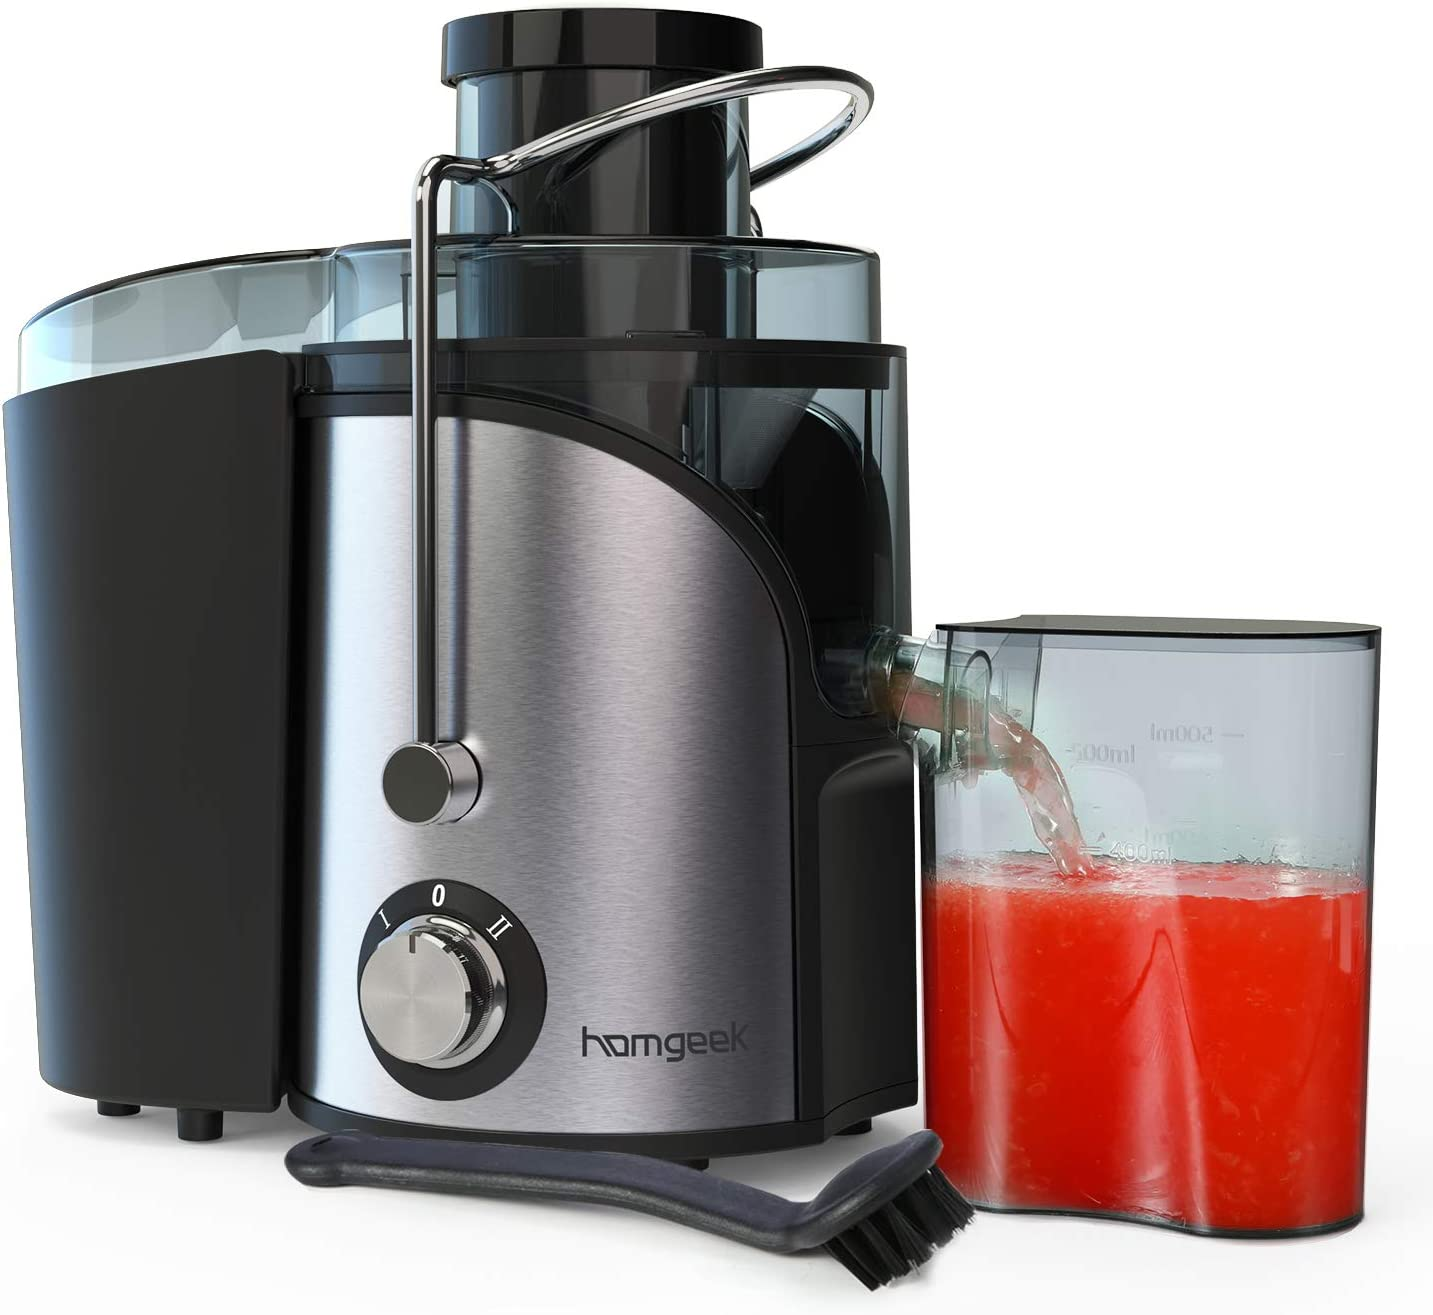 Homgeek Juicer Extractor, Centrifugal Juicer with Wide Mouth, Dual Speed Mode Juicer Machine with Anti-Shake Design, Easy to Clean, BPA-FREE